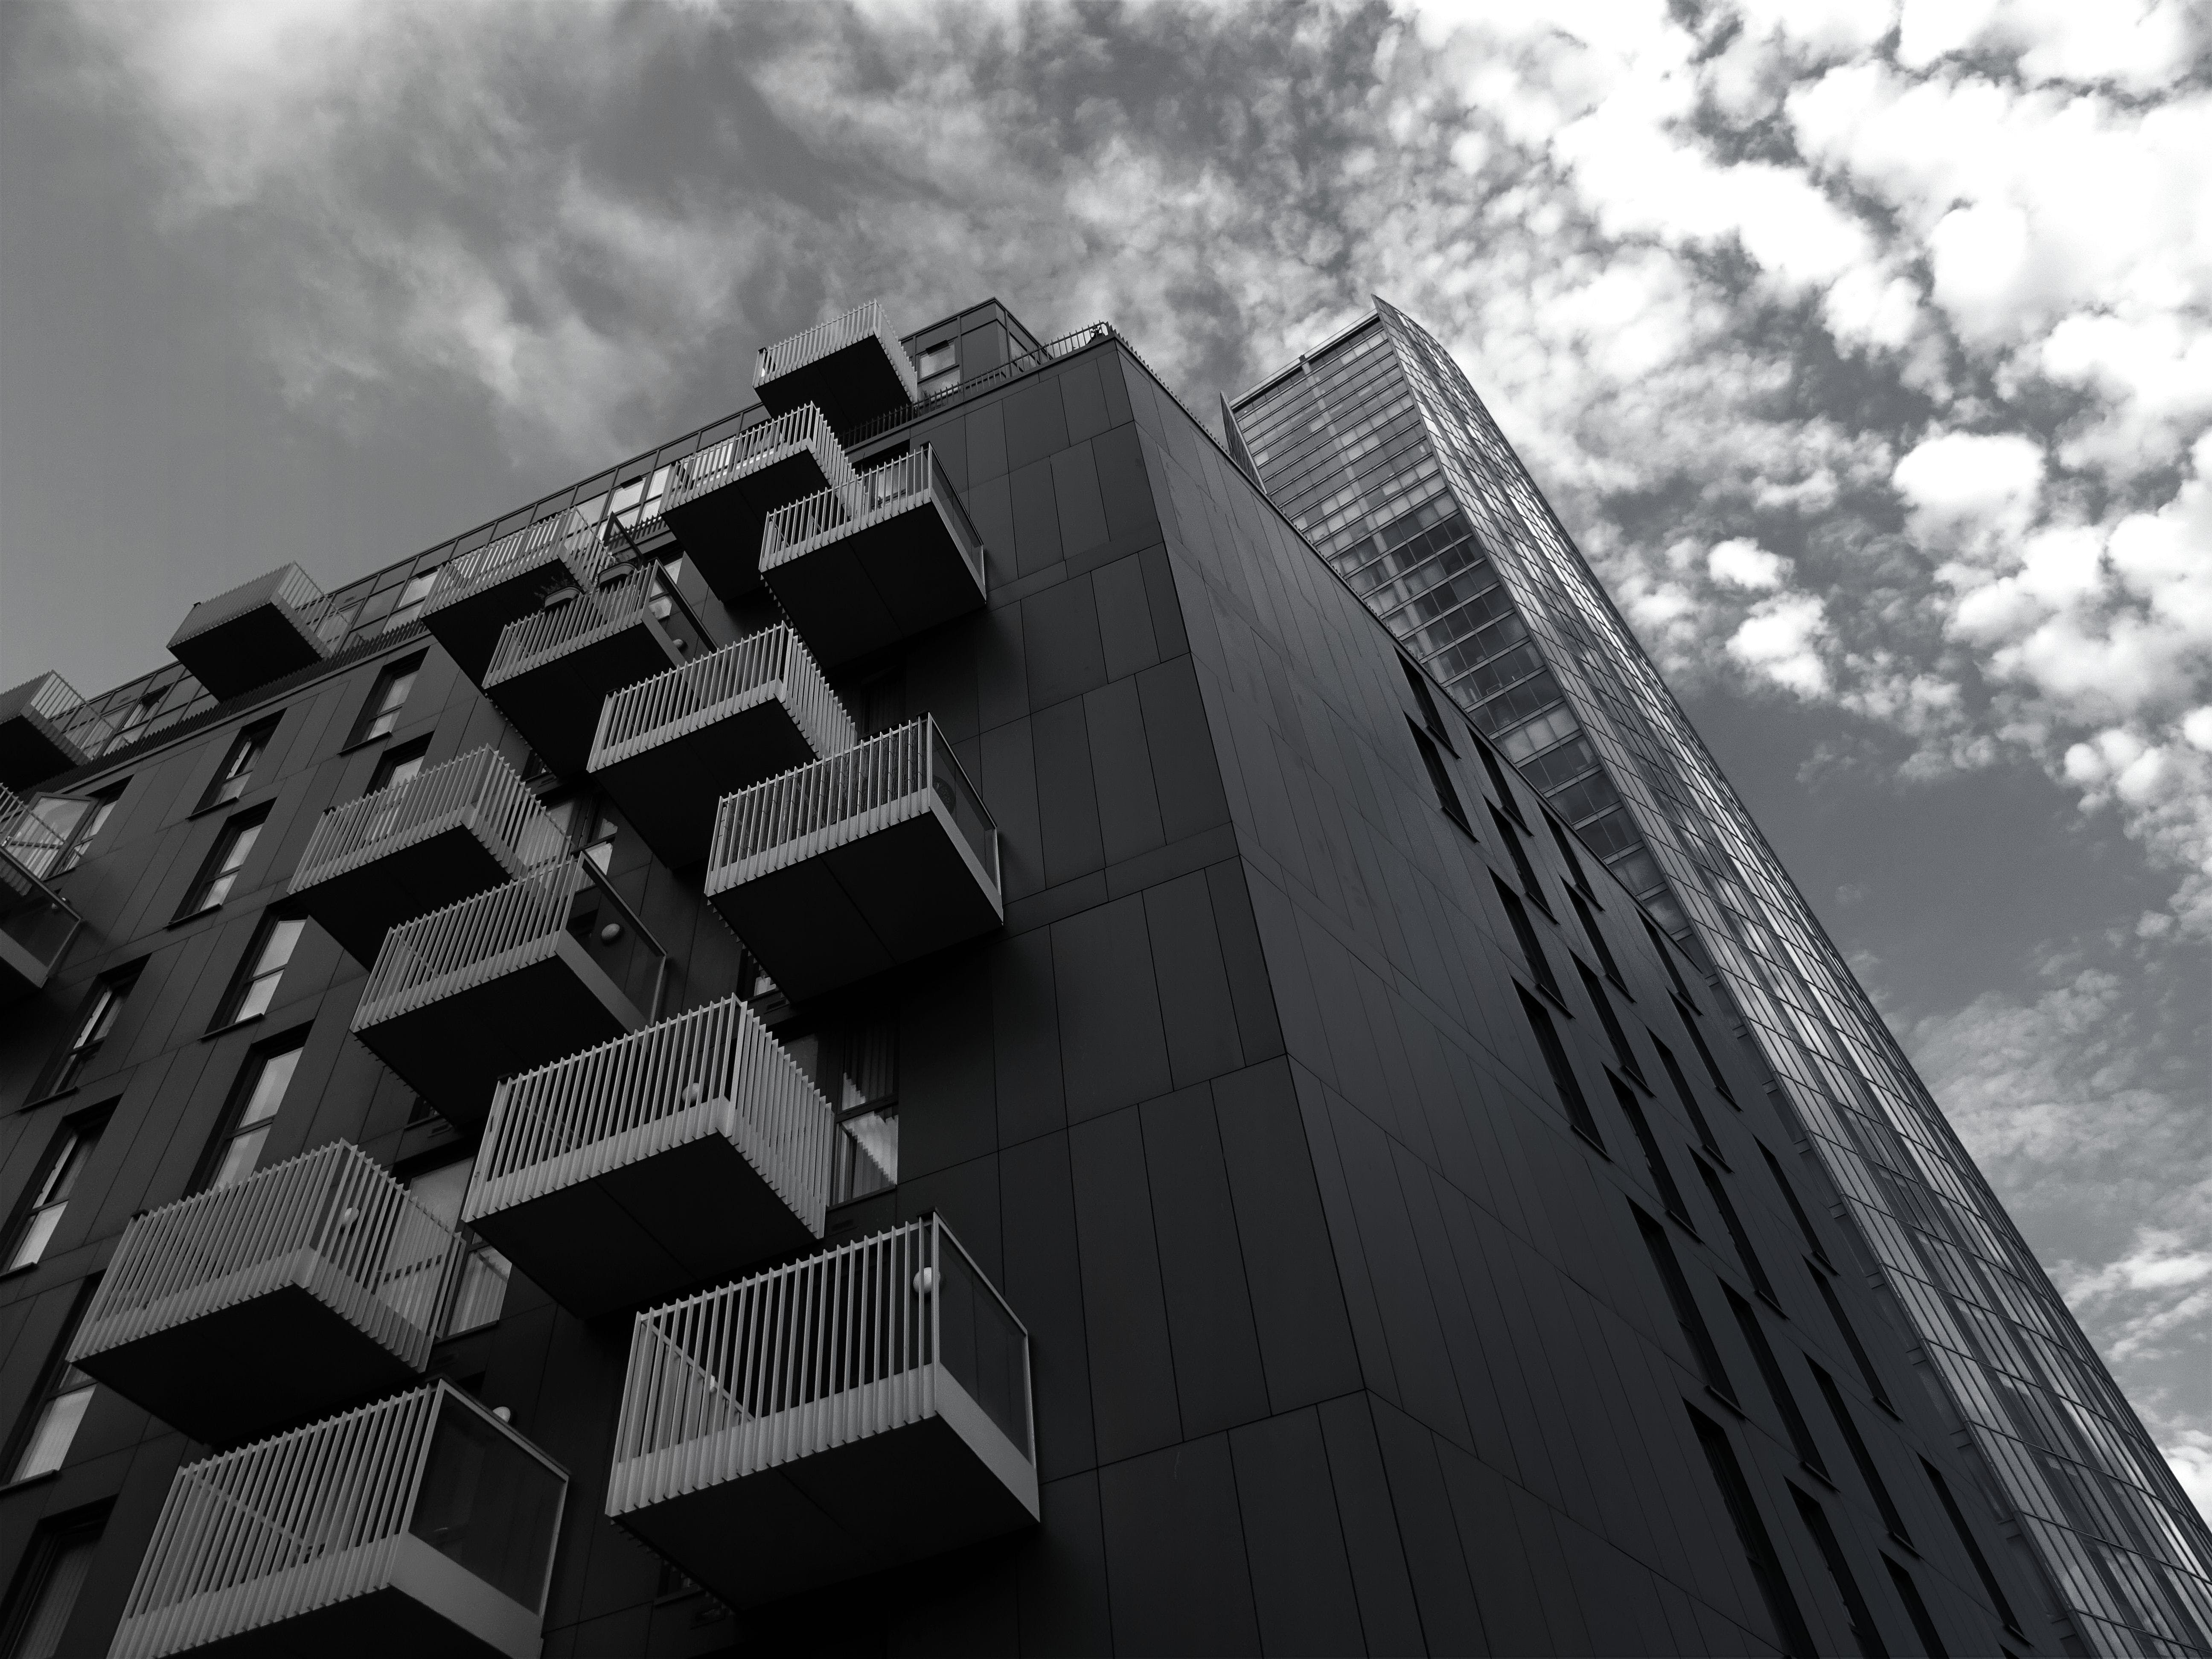 Grayscale and Low Angle Photography of High-rise Building Structure